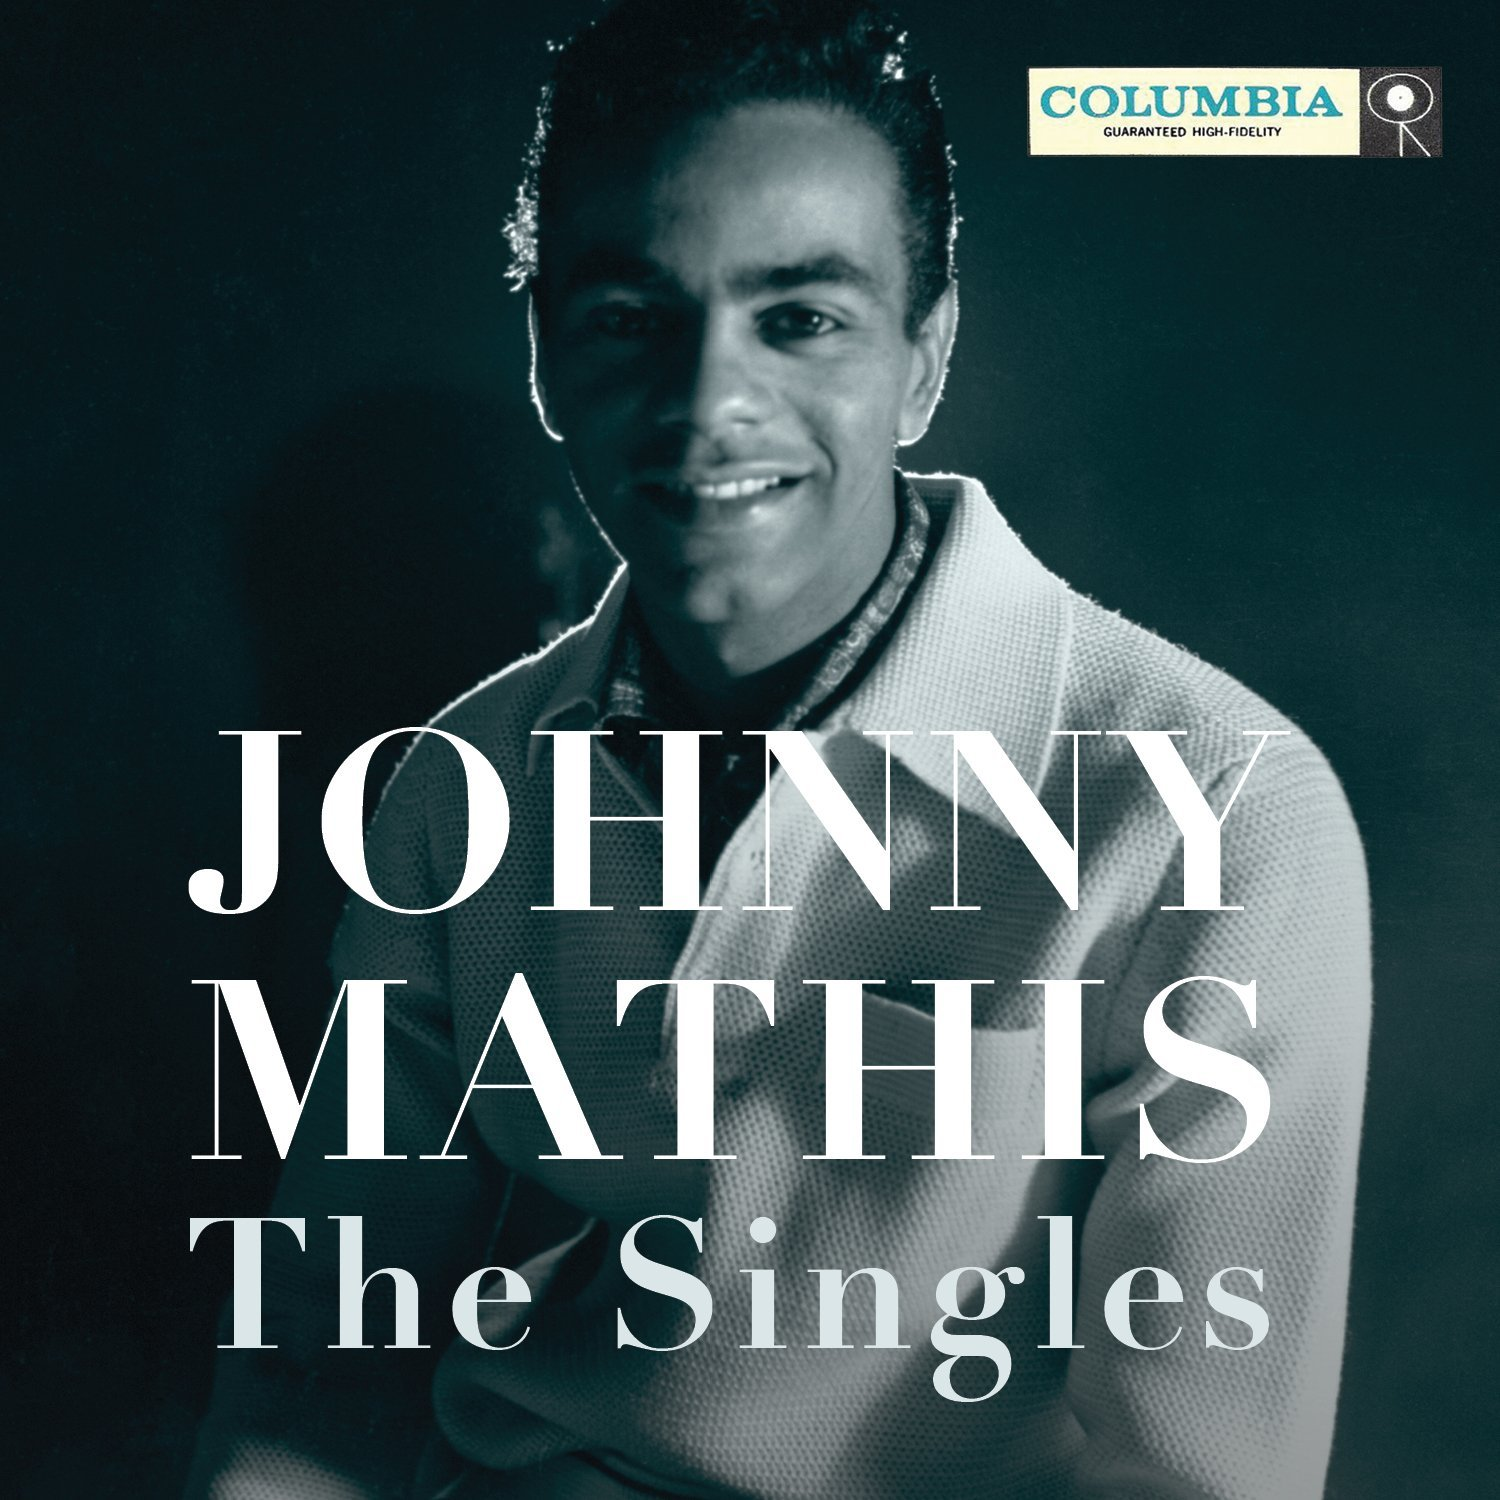 Johnny Mathis 80th Celebrated With Box Set - Noise11.com